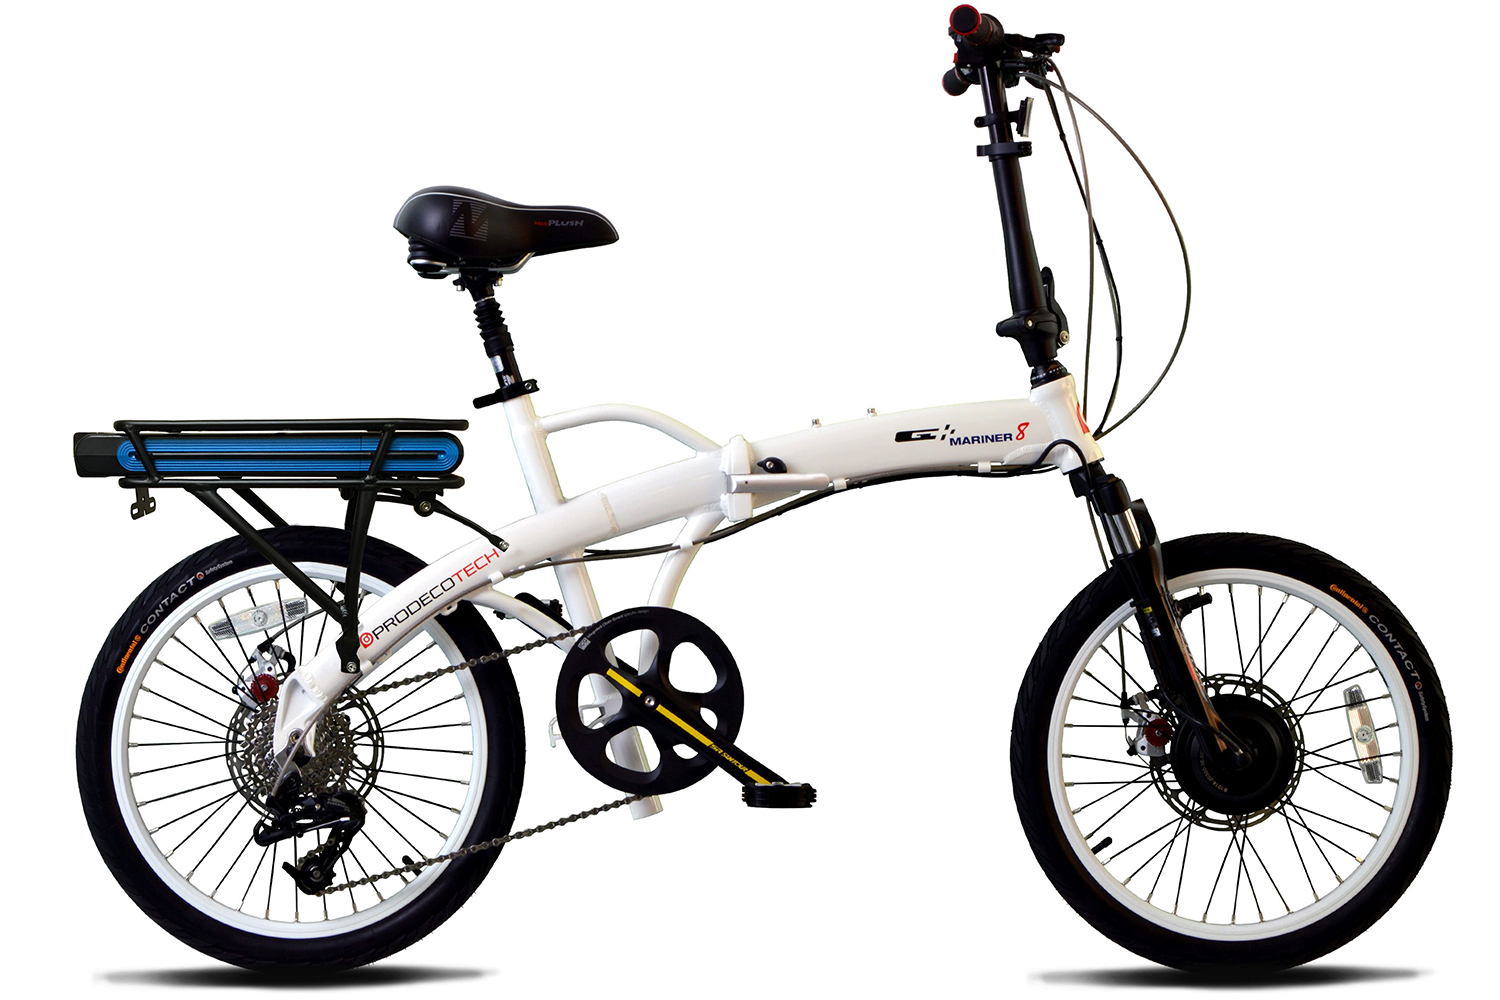 Prodecotech Mariner 8 Electric Bicycle Gearscoot